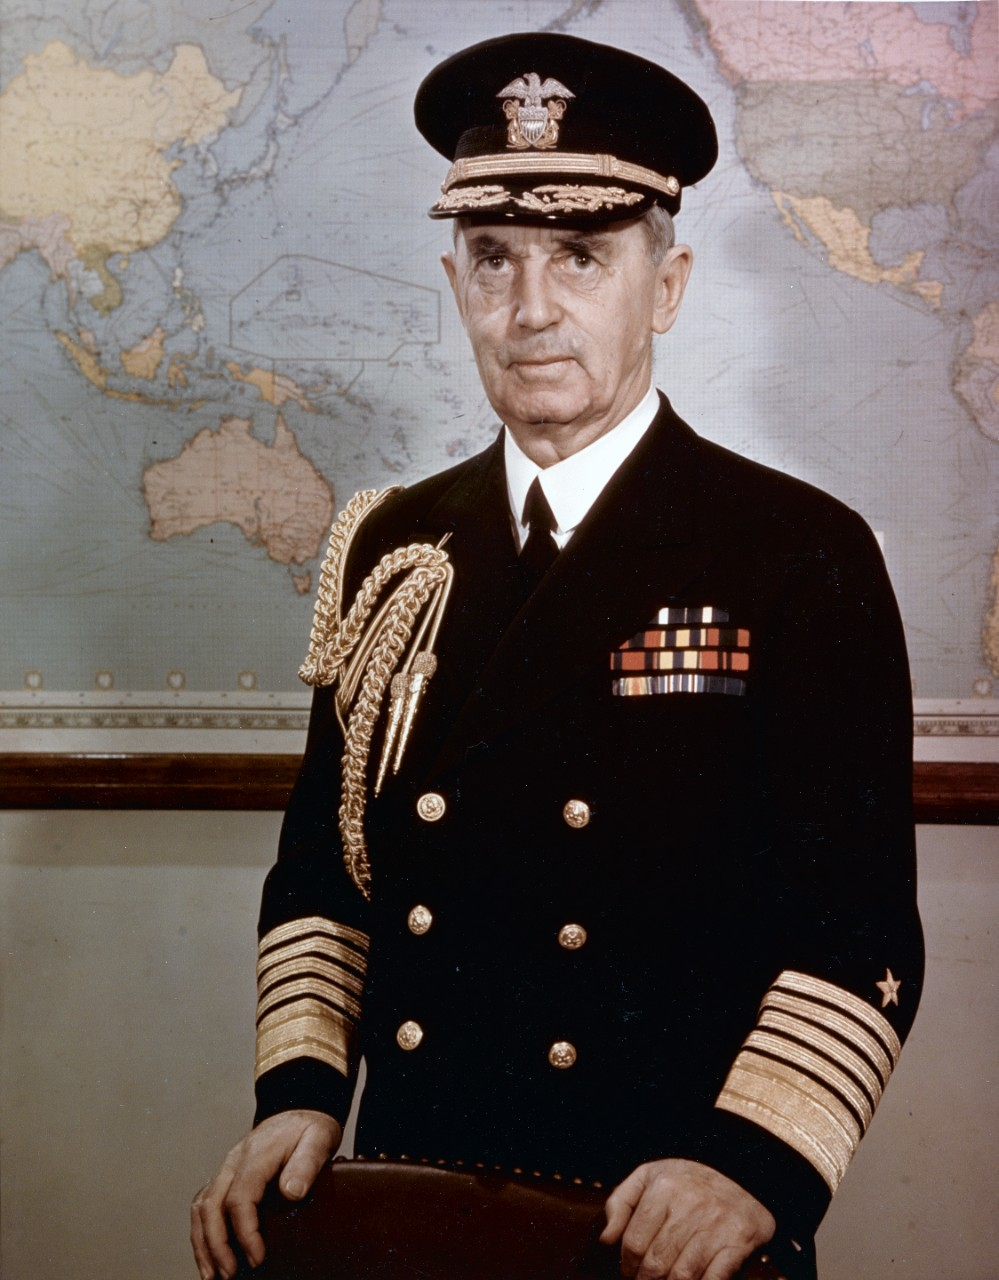 Photo #: 80-G-K-14447 Fleet Admiral William D. Leahy, USN, Chief of Staff to the President and Senior Member of the Joint Chiefs of Staff